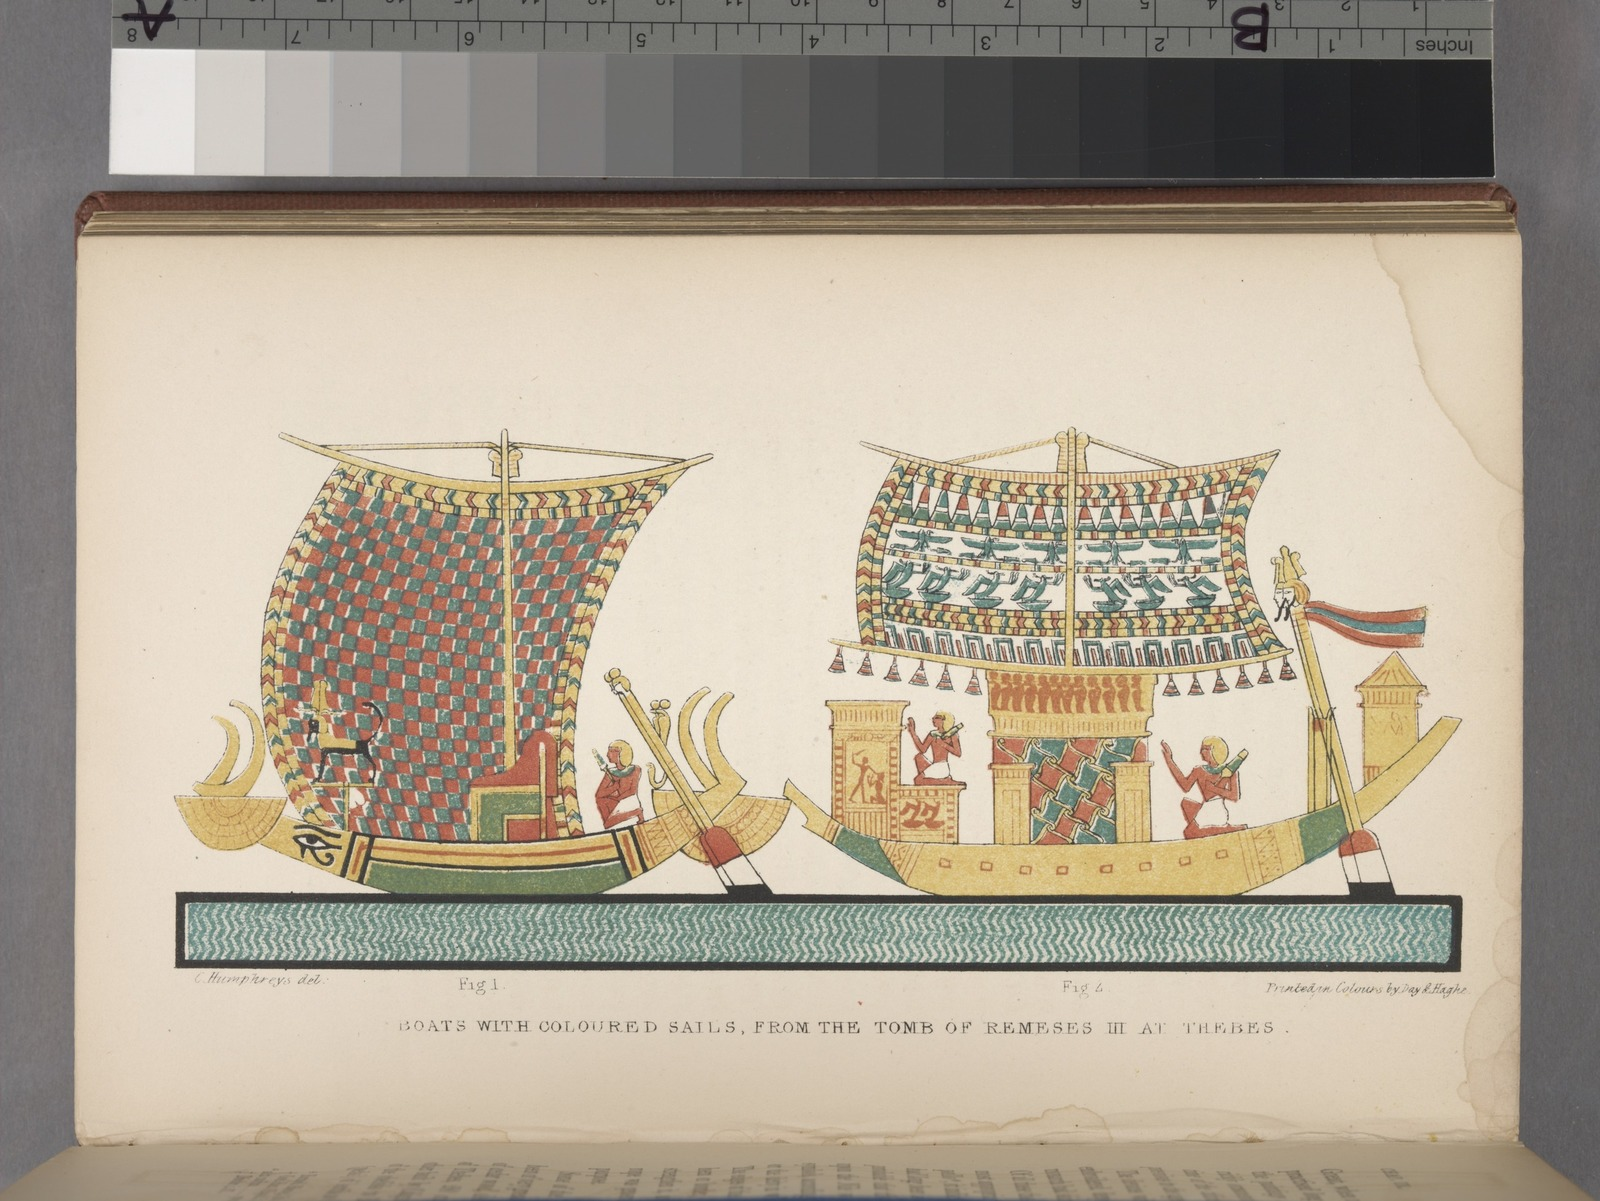 Boats with coloured sails, from the Tomb of Remeses III at Thebes.